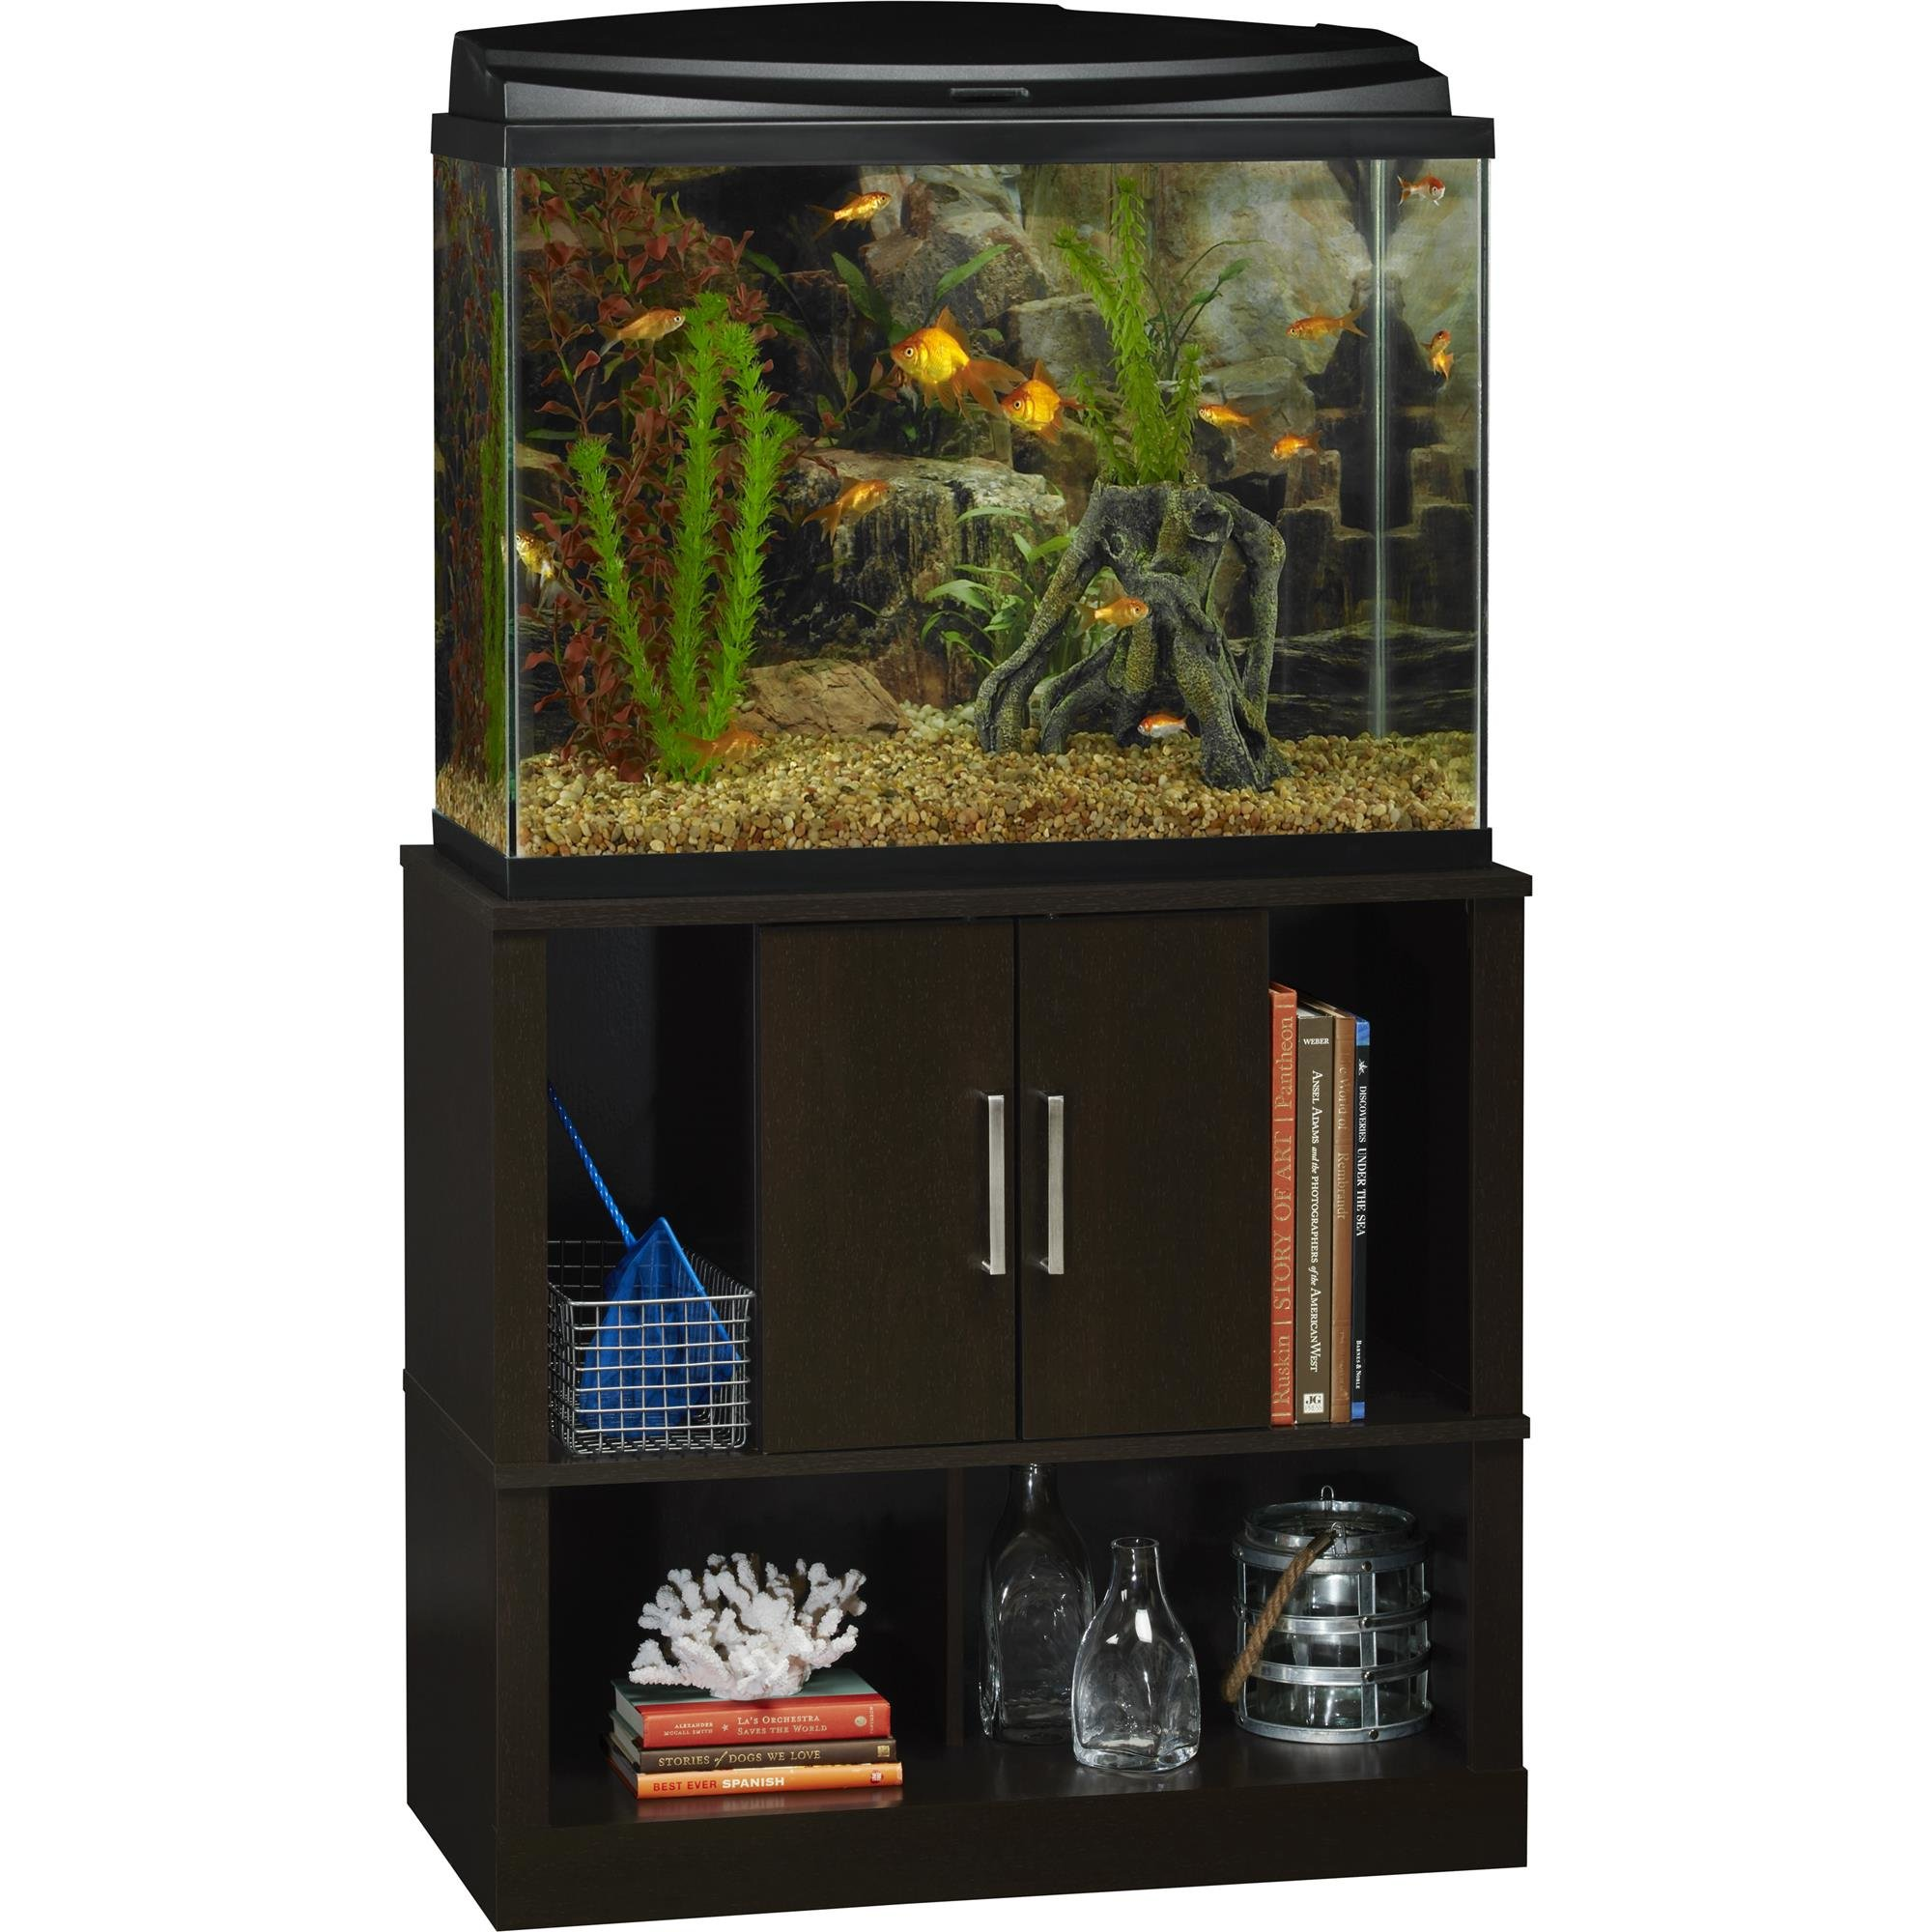 tucker murphy pet hooper gallon aquarium stand reviews accent console table furniture edmonton coffee round patio and chairs with umbrella antique kidney tall dining room west elm